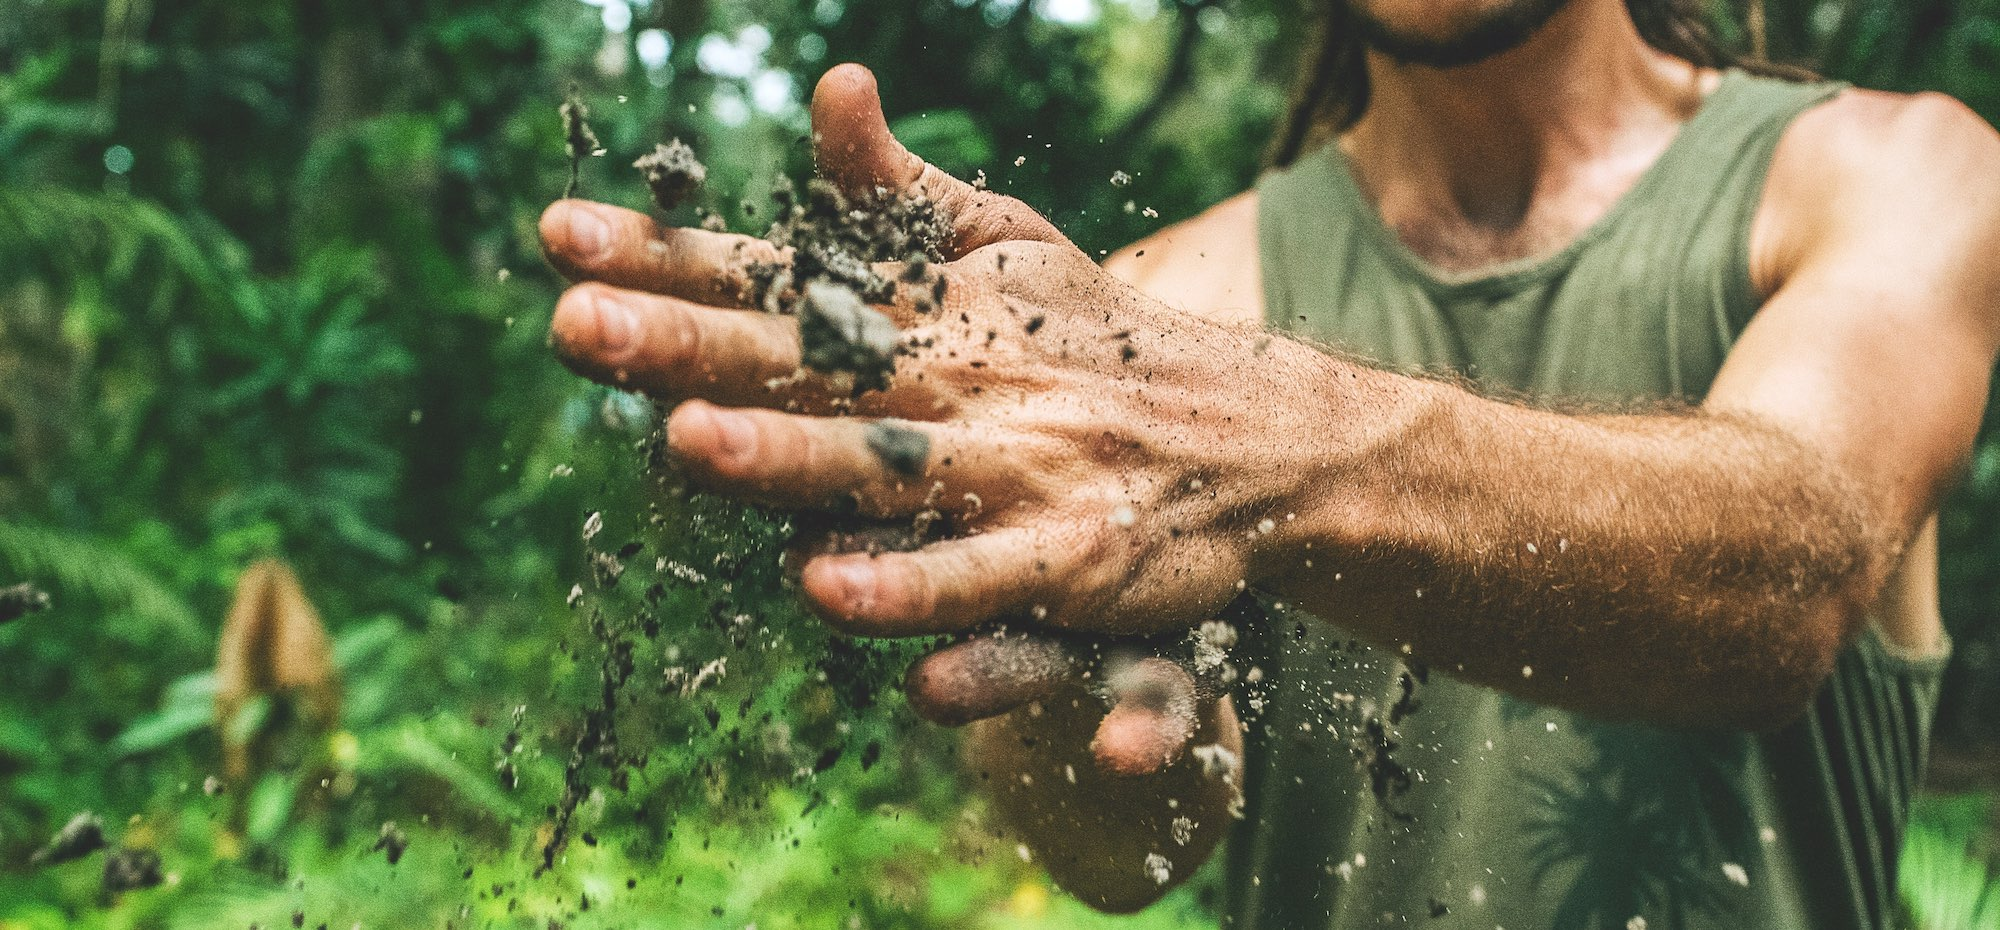 male hands brushing dirt through them